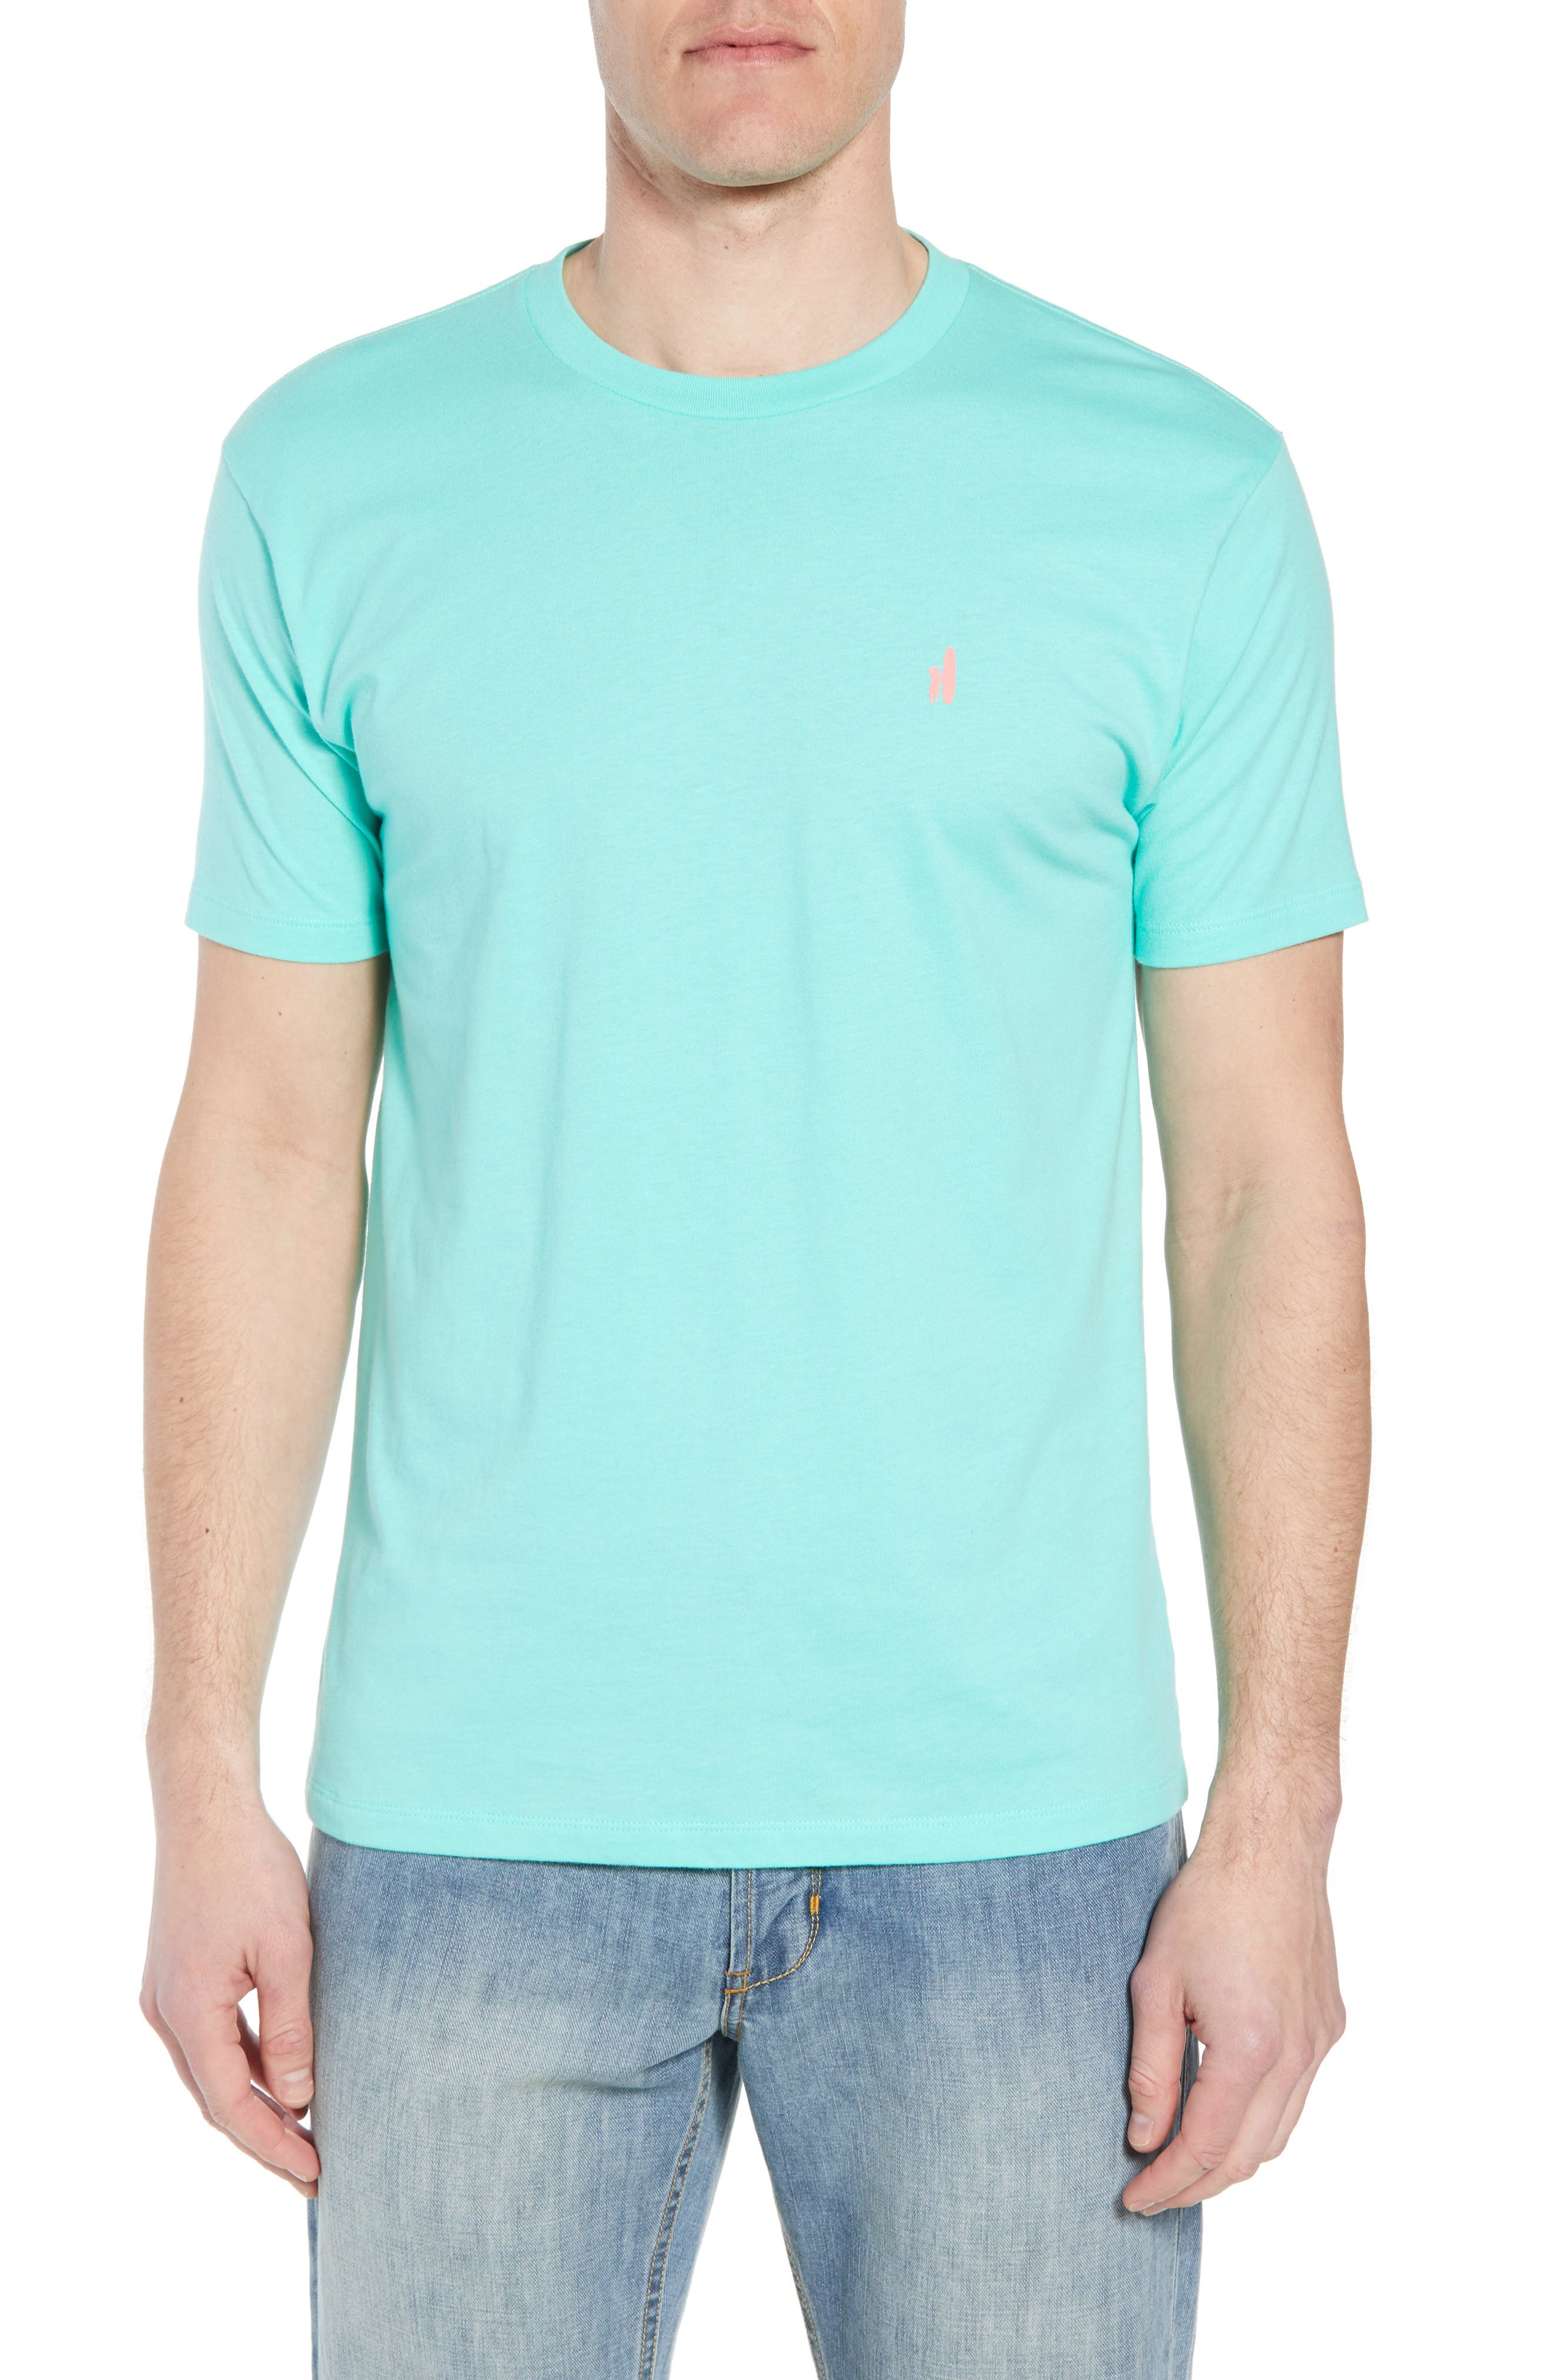 Vance Graphic T-Shirt,                         Main,                         color, 350